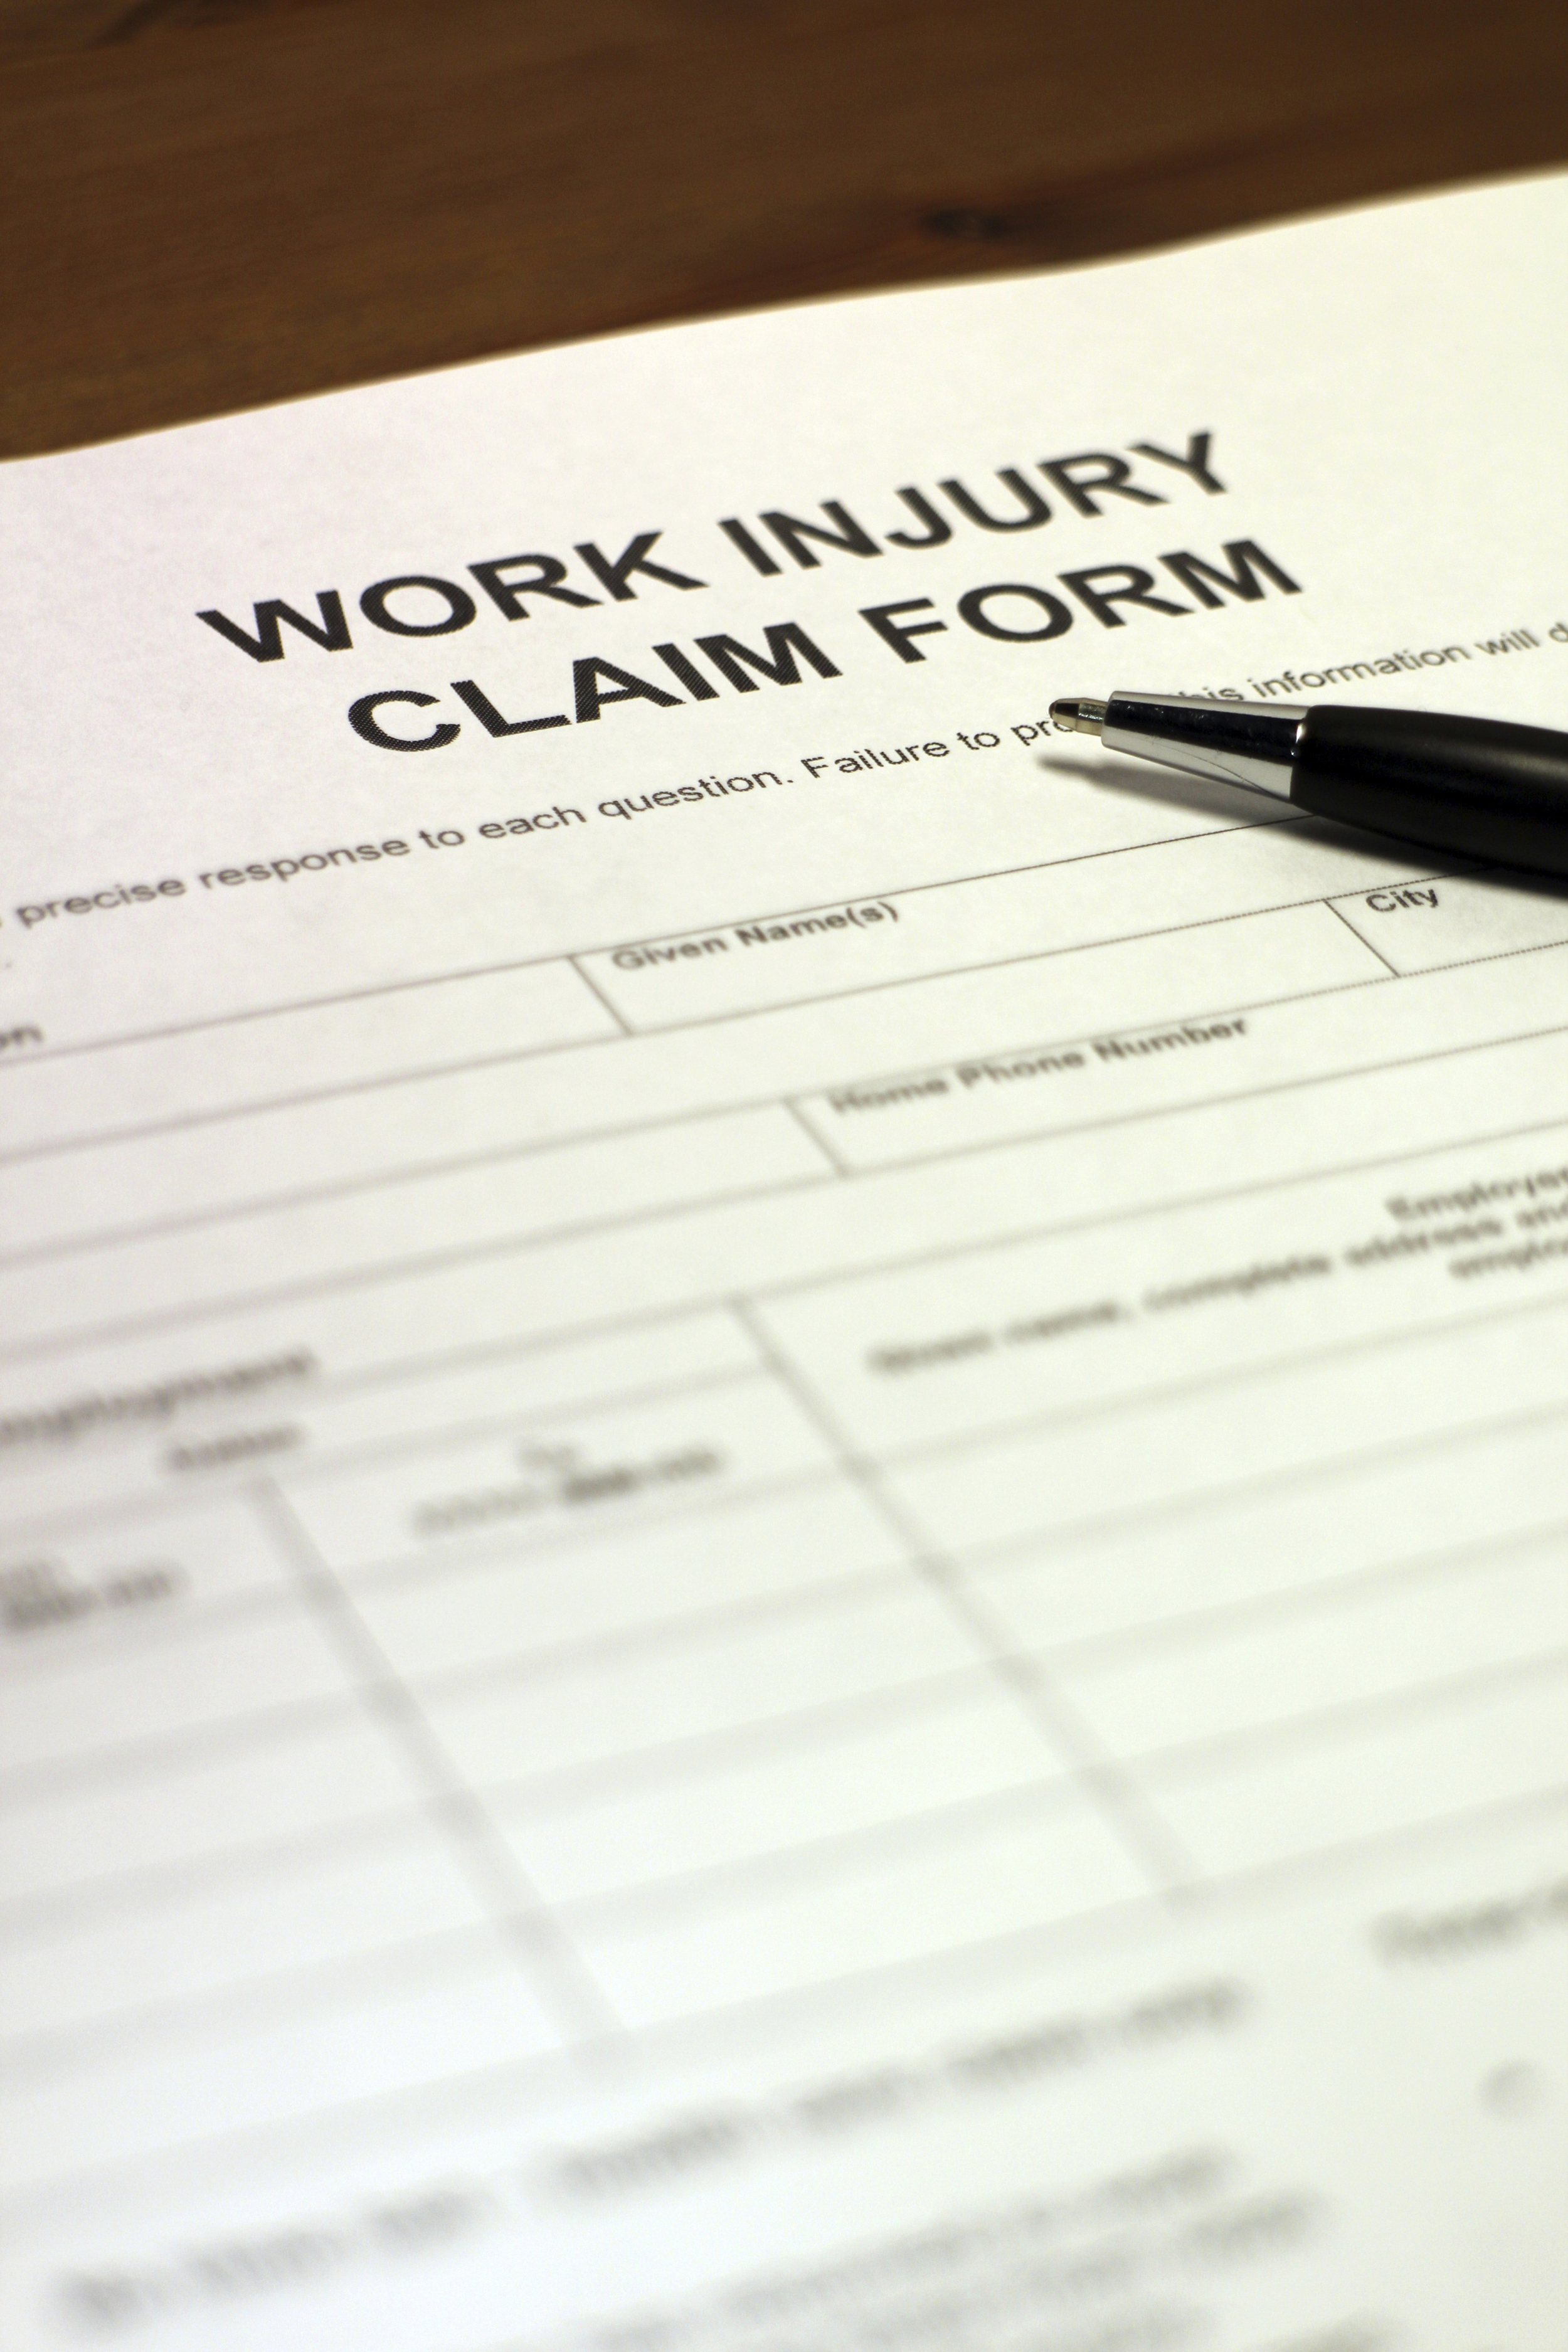 Claim form for filing an injury.